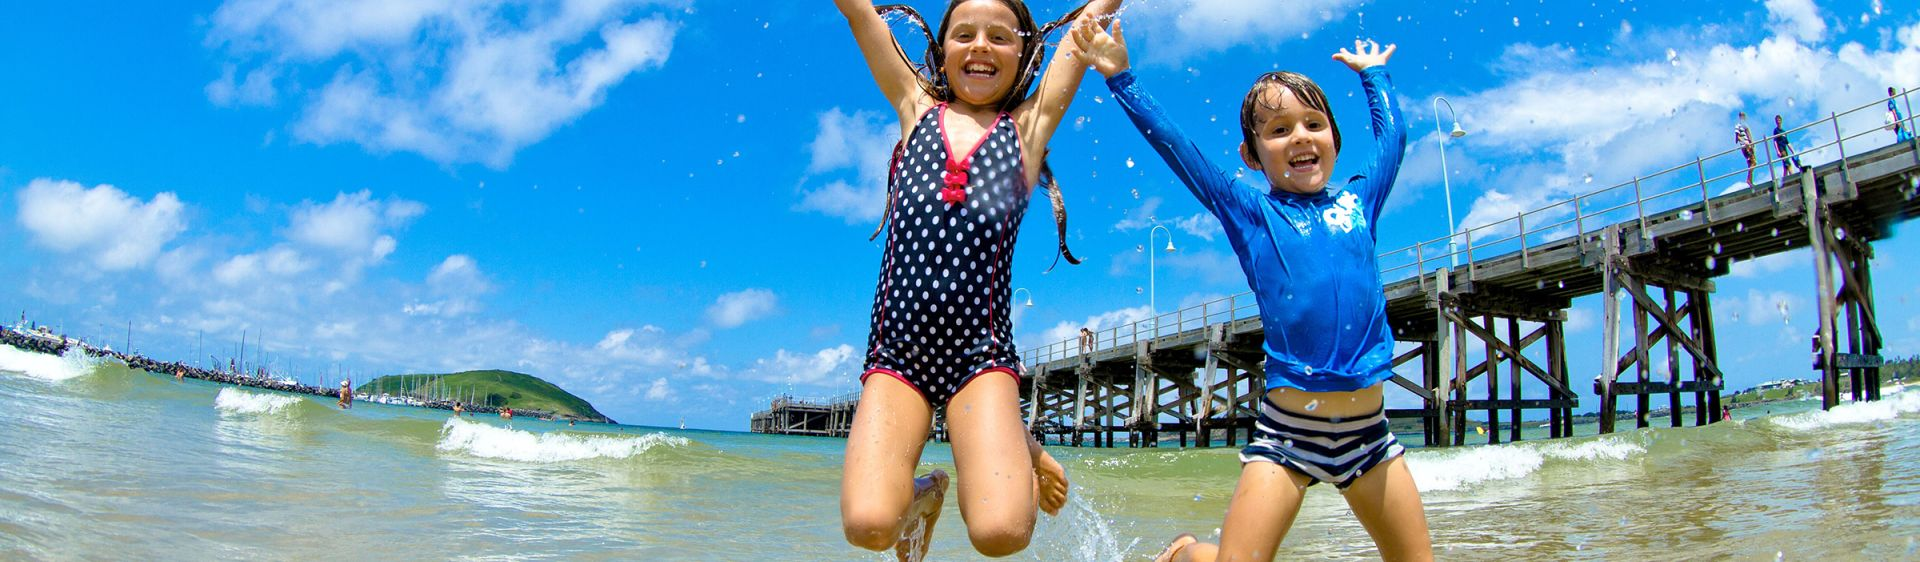 Kids having fun at Jetty Beach, Coffs Harbour